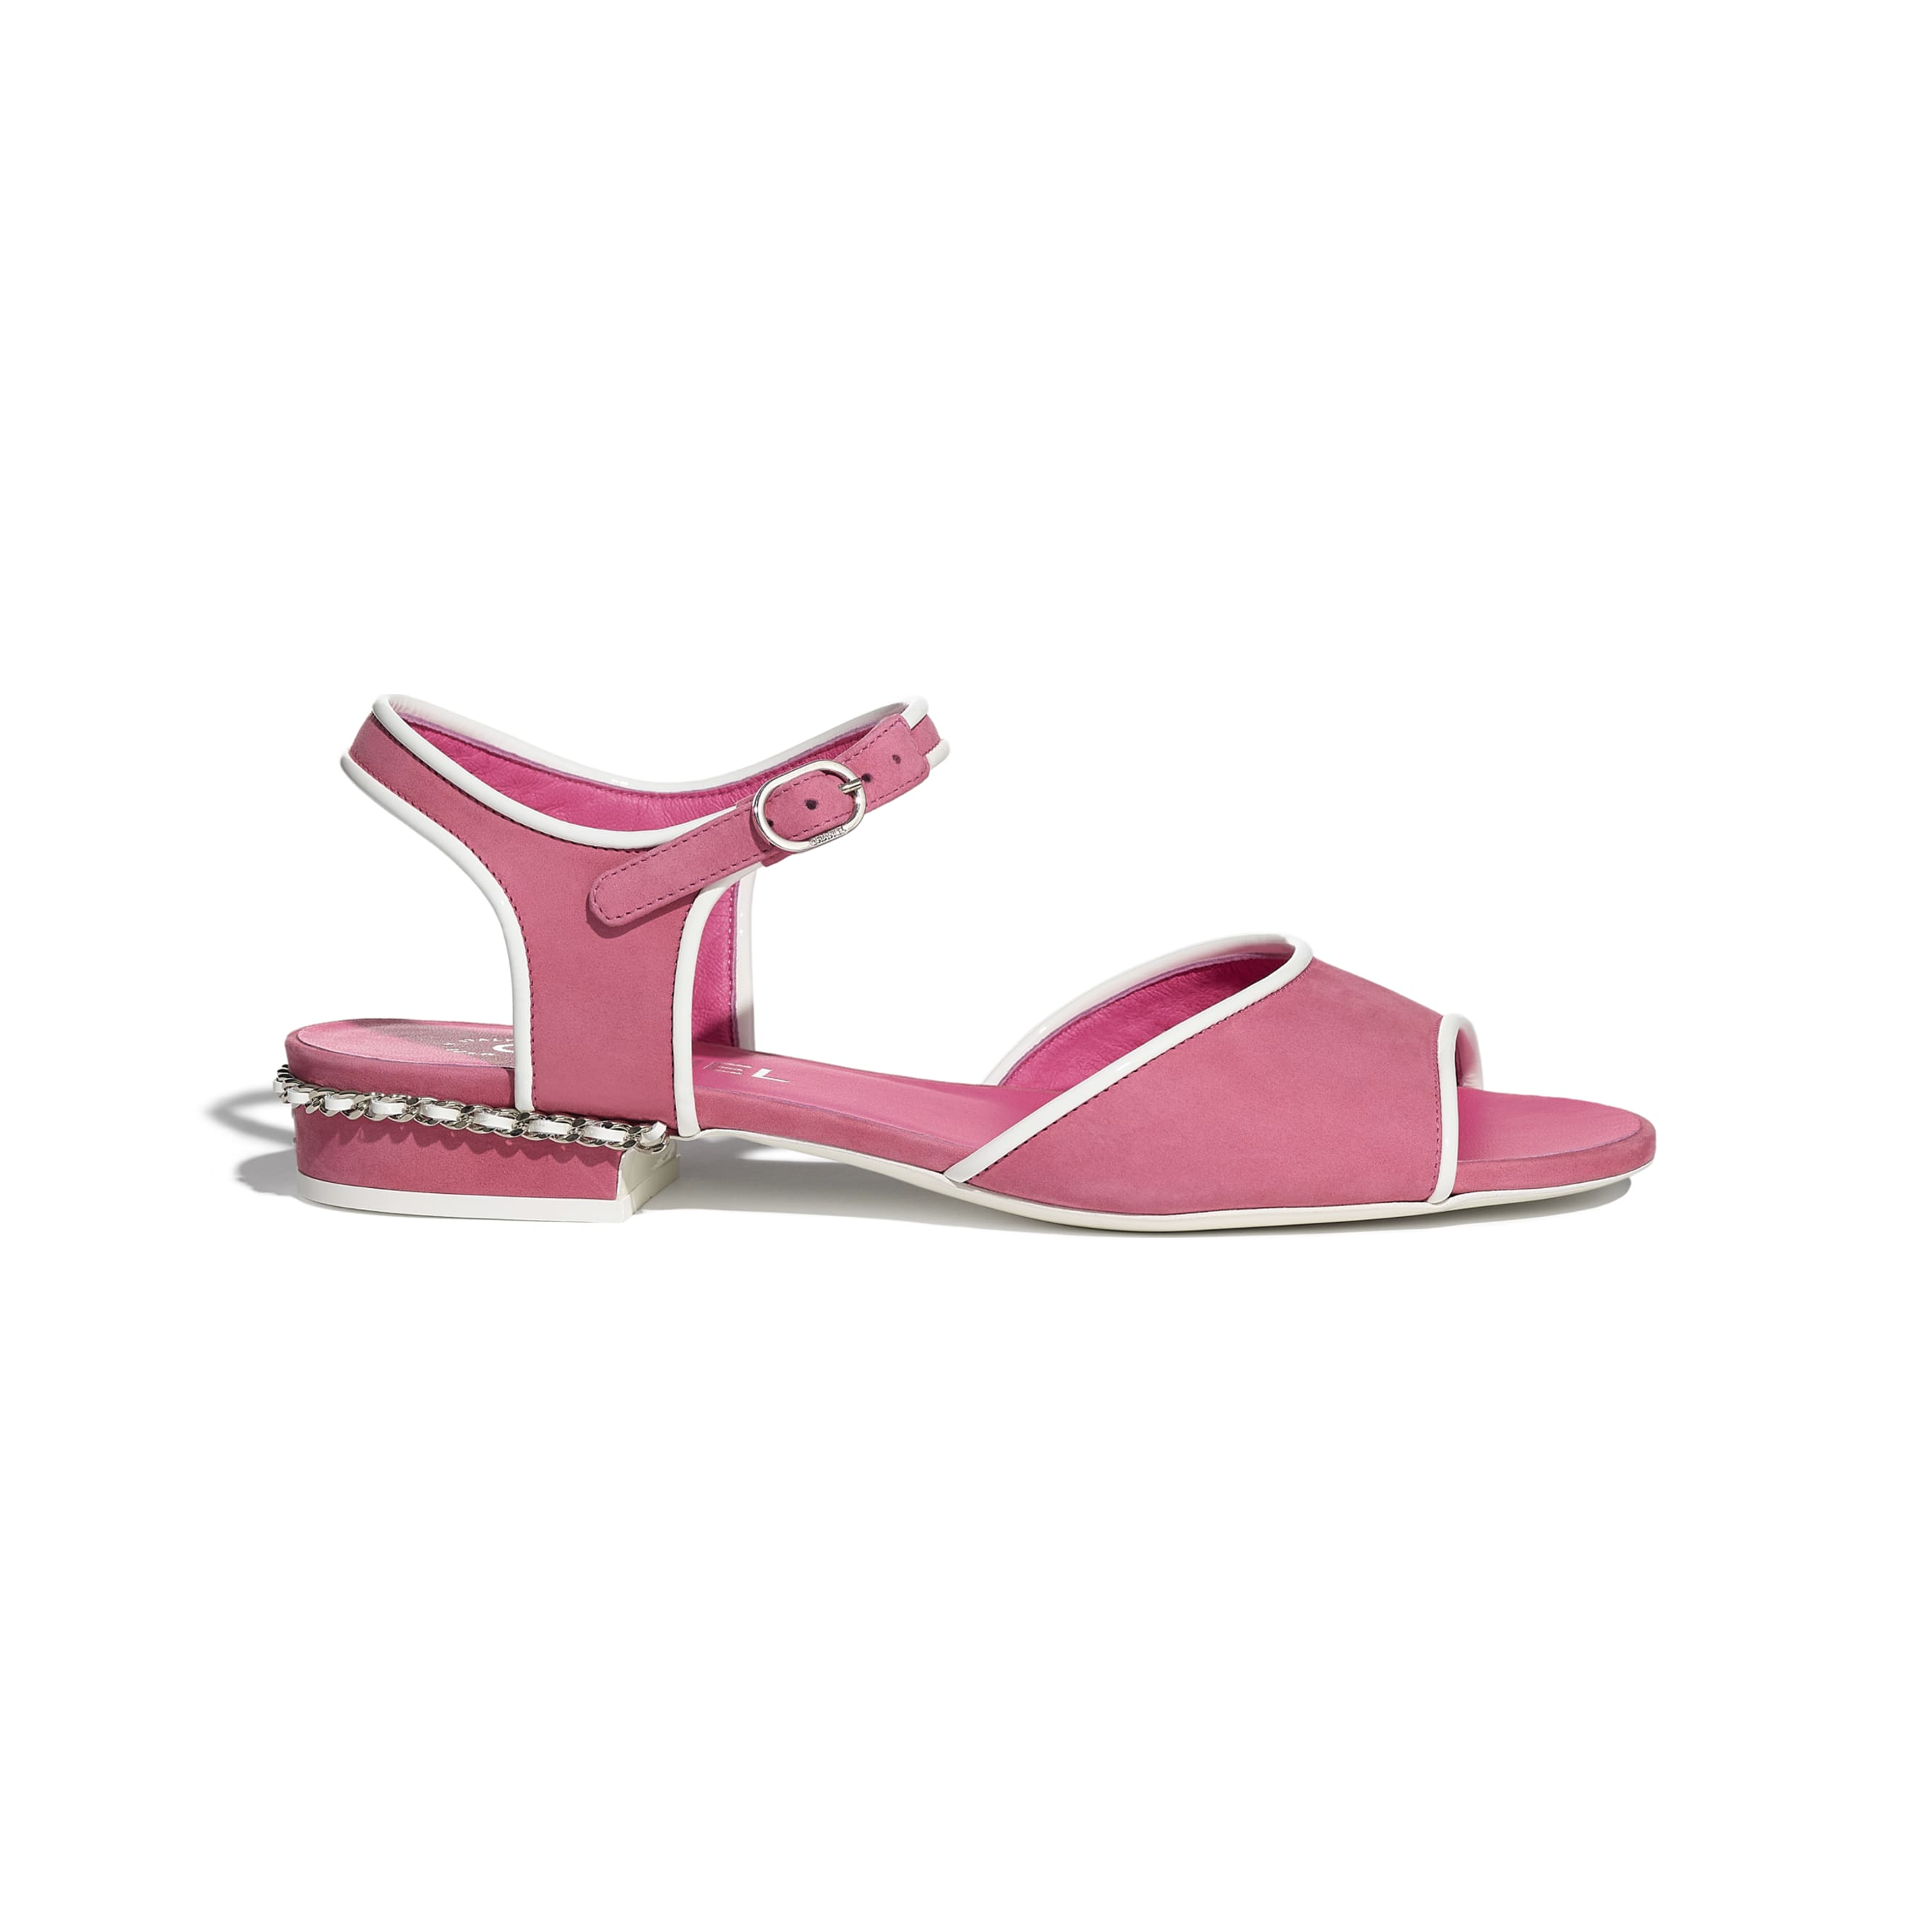 Sandals - Pink - Matte Velvet Calfskin - CHANEL - Default view - see standard sized version